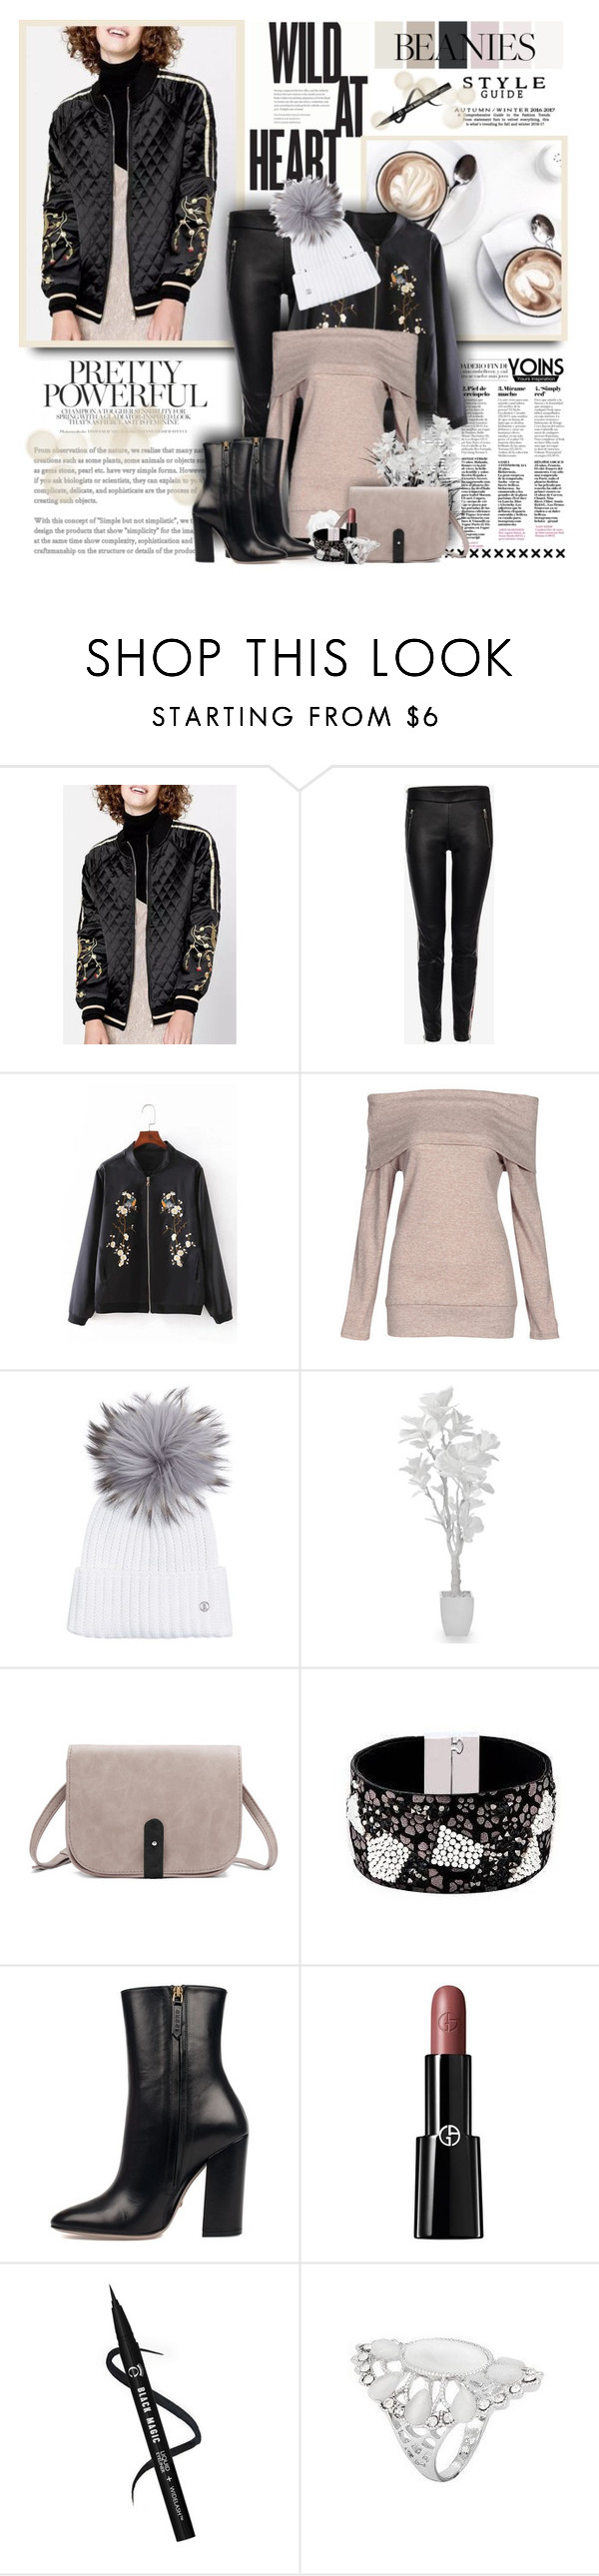 """""""Pretty Yoins 282"""" by sneky ❤ liked on Polyvore featuring Alexander McQueen, Bogner, Gucci, Giorgio Armani and pompombeanies"""